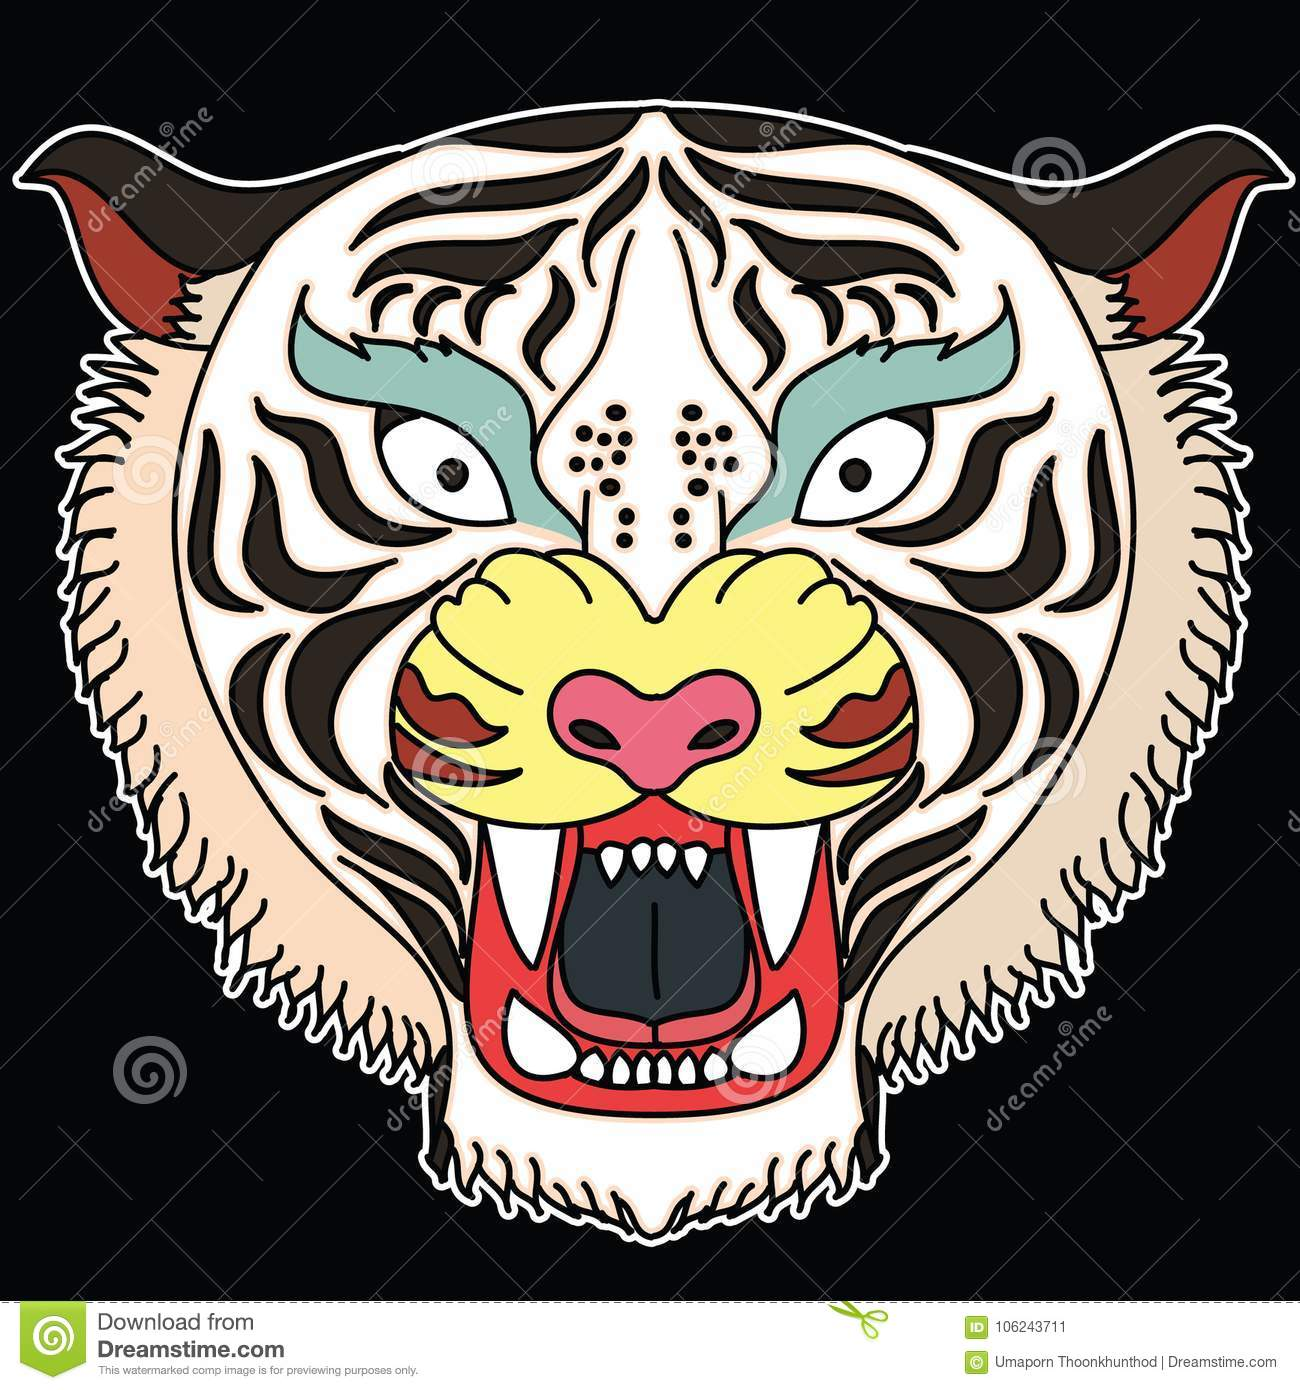 77105a0c6 Tiger Face Tattoo For Sticker. Stock Vector - Illustration of flower ...